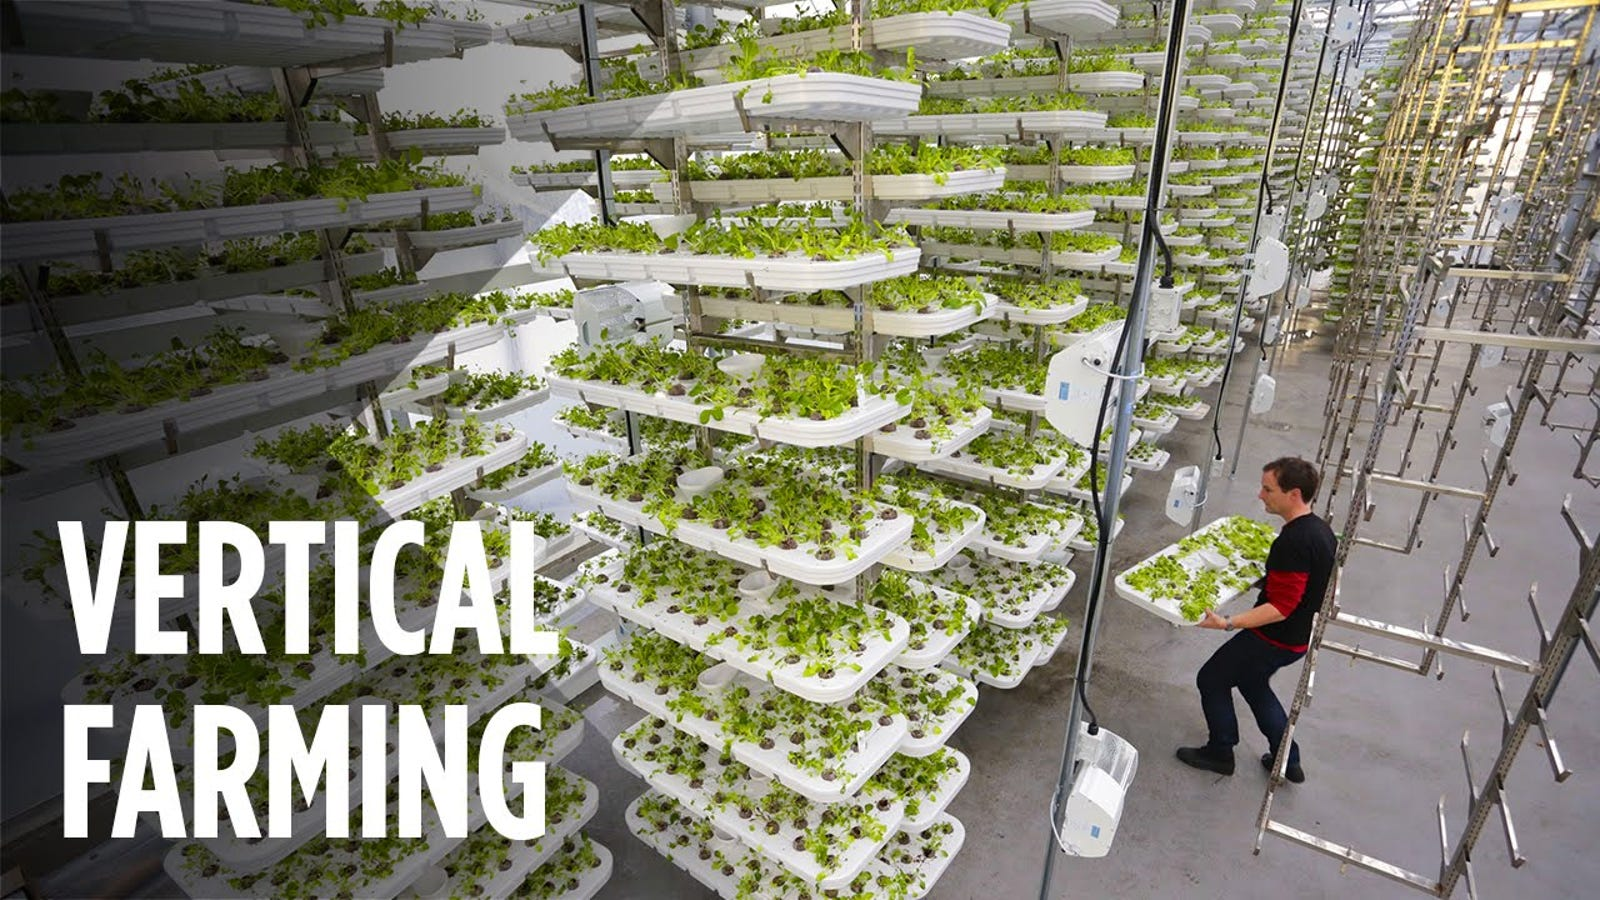 The World's Largest Vertical Farm Is Being Built in New Jersey